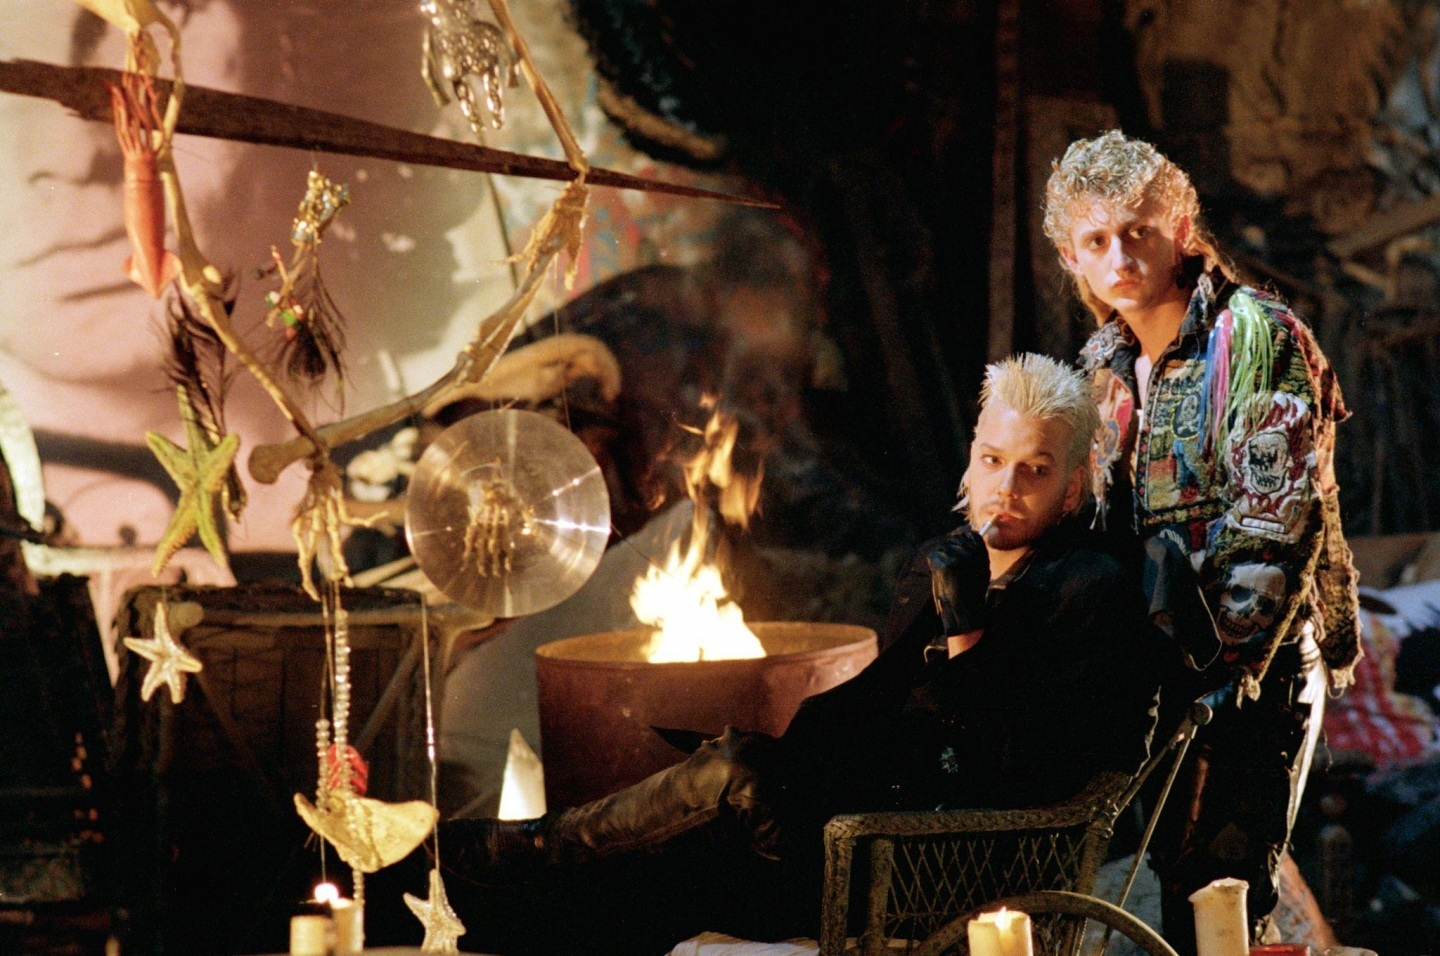 still-of-kiefer-sutherland-and-alex-winter-in-the-lost-boys-large-picture-202910905.jpg